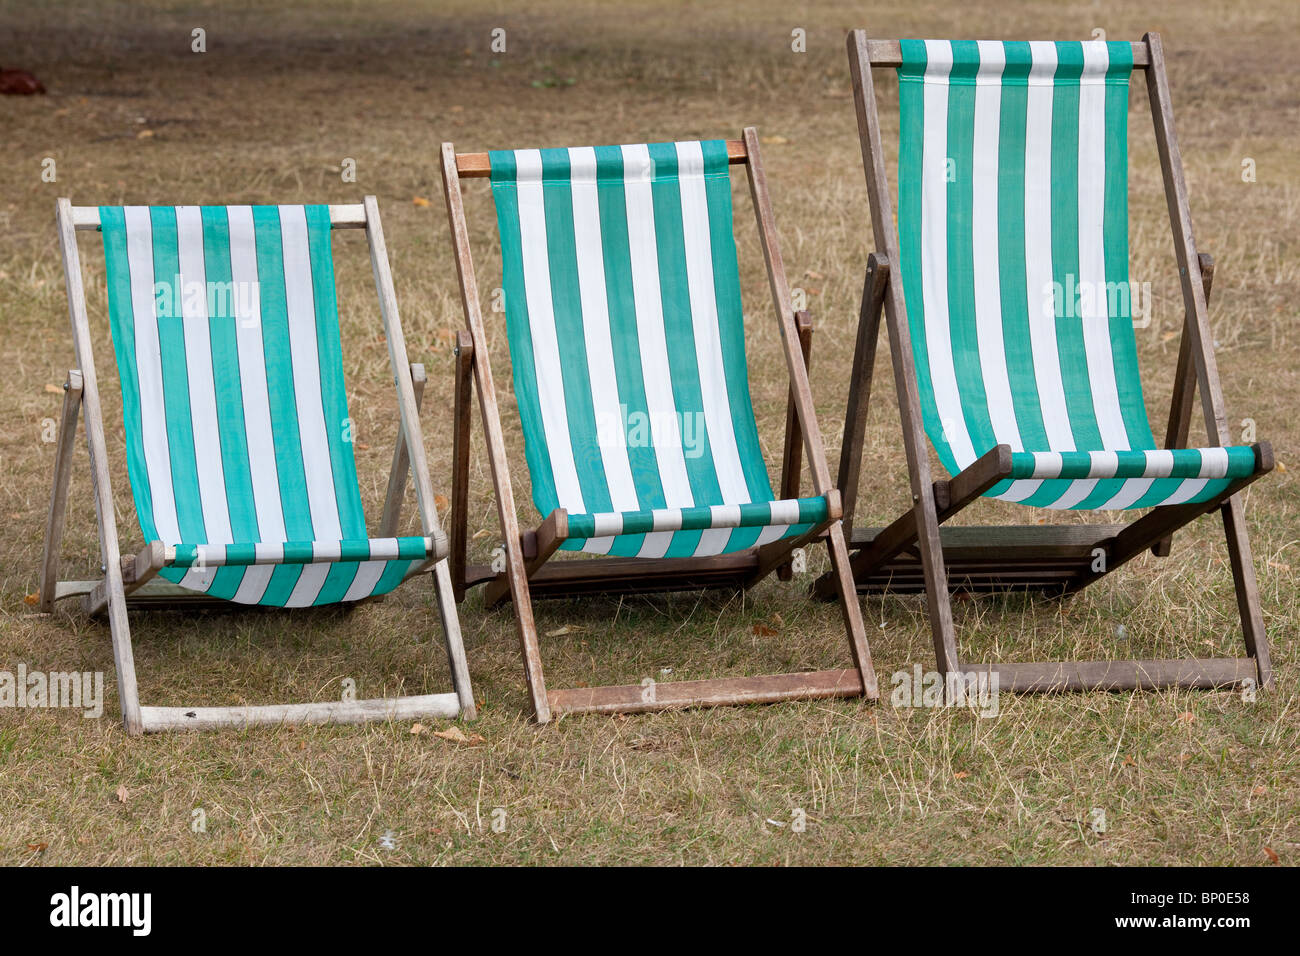 Three striped deck chairs in various sizes sit unused at St James Park, London. Photo:Jeff Gilbert - Stock Image